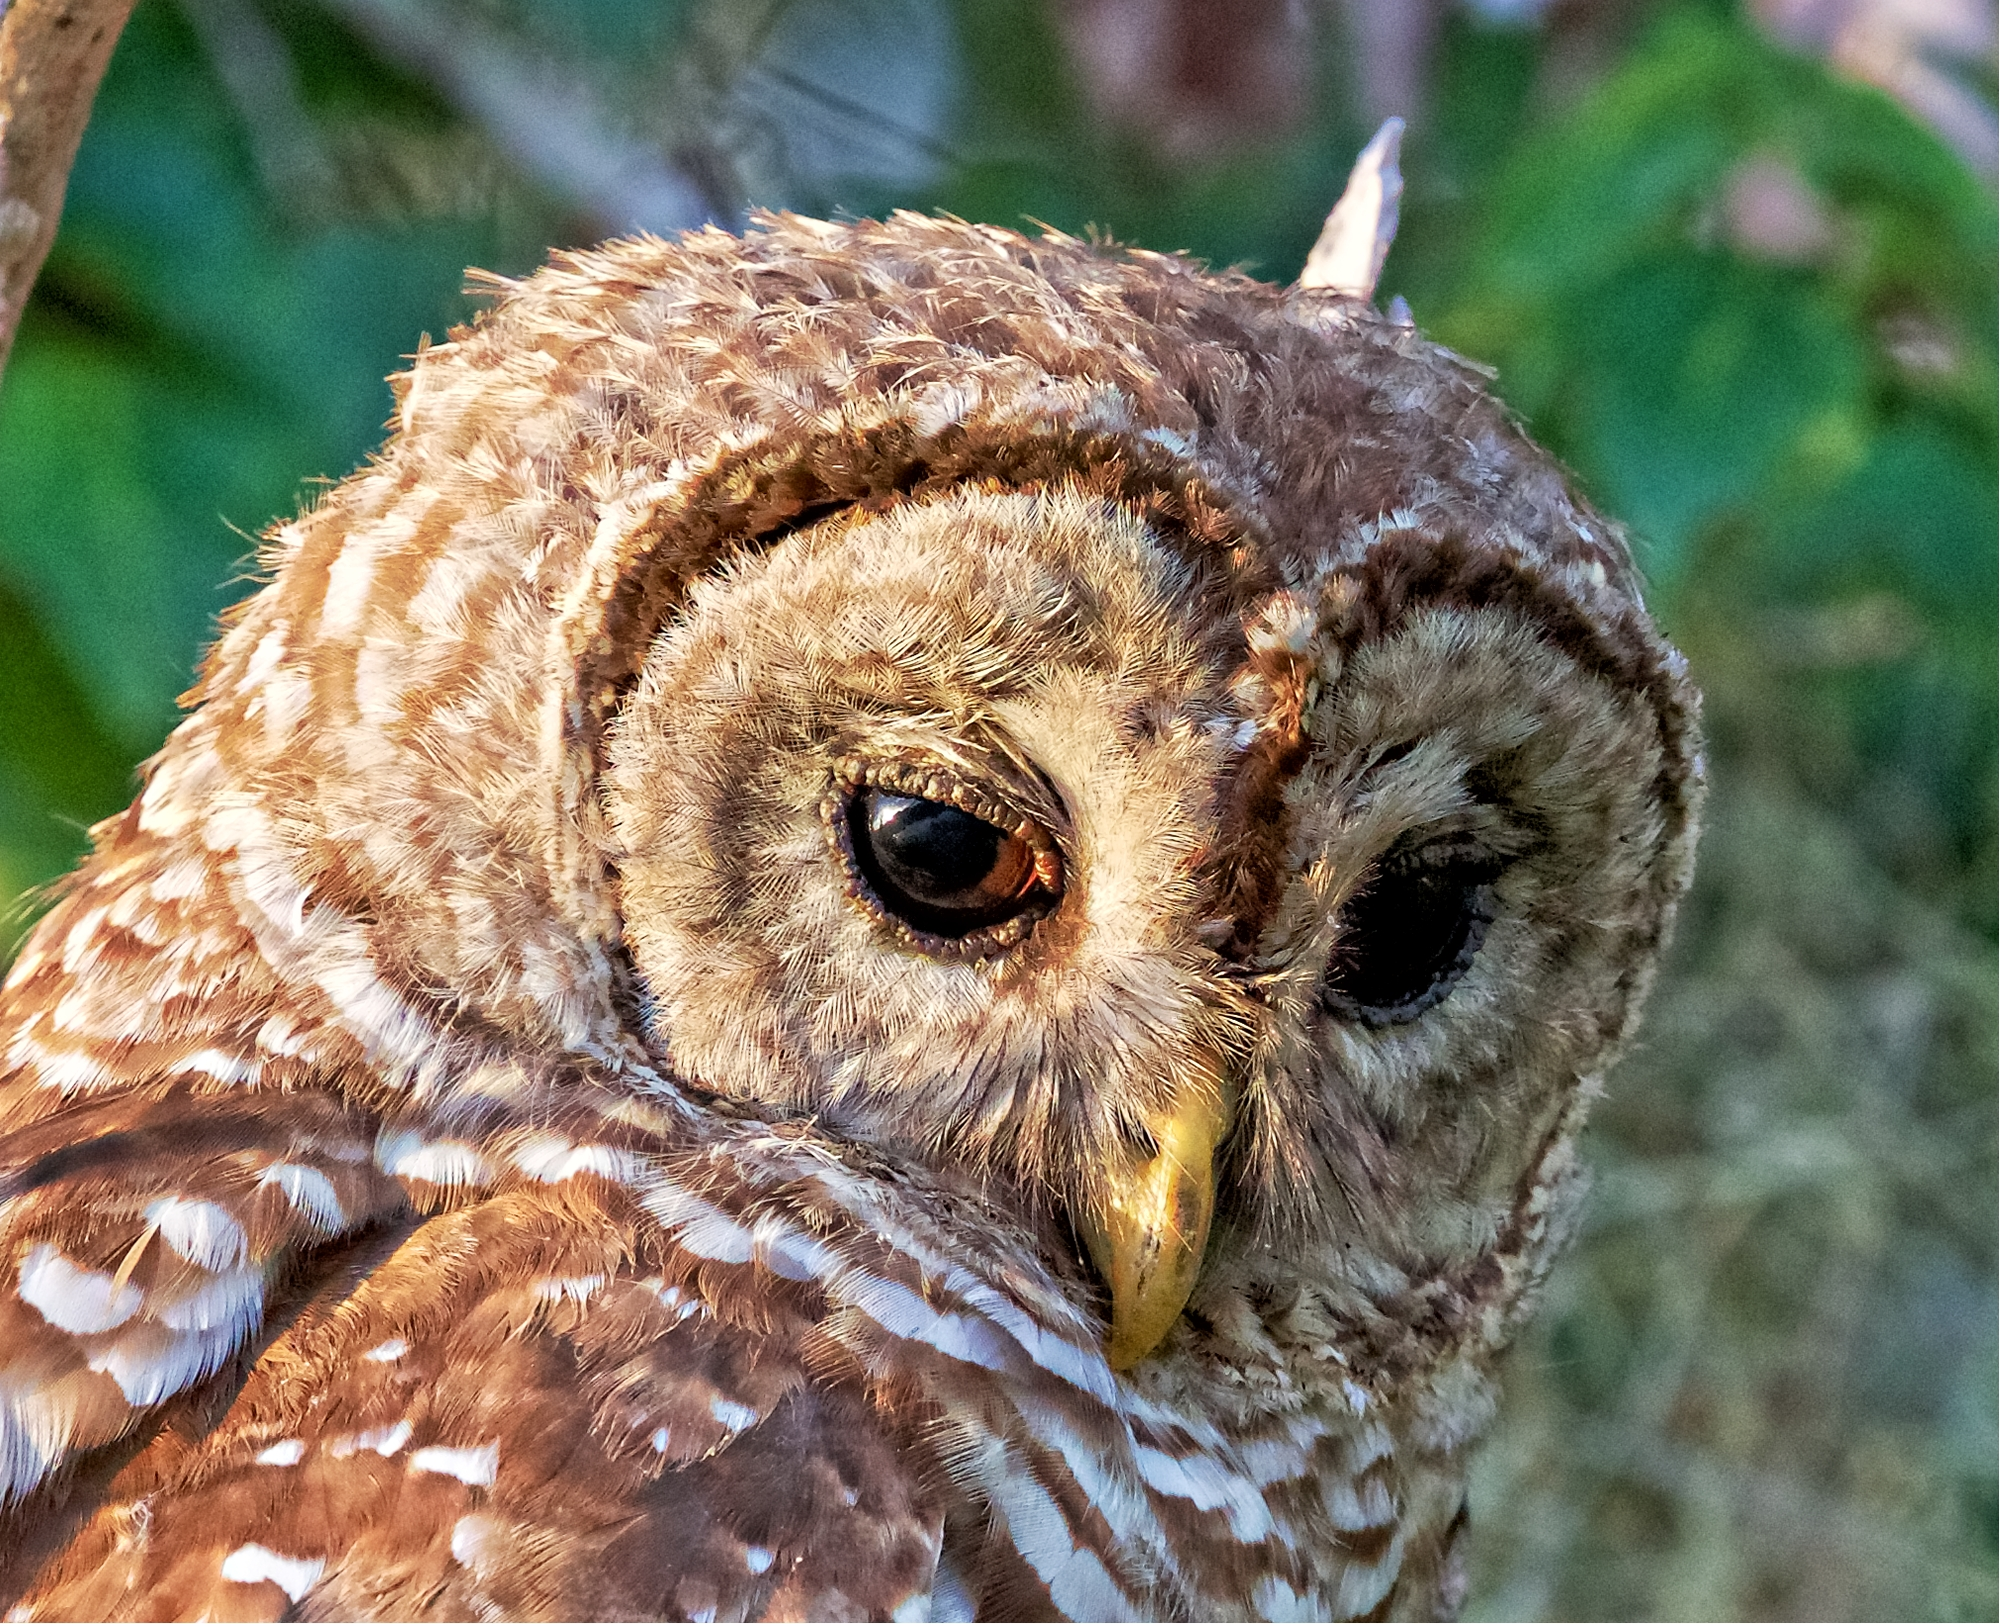 I had a close encounter of the Who Kind with a Barred Owl